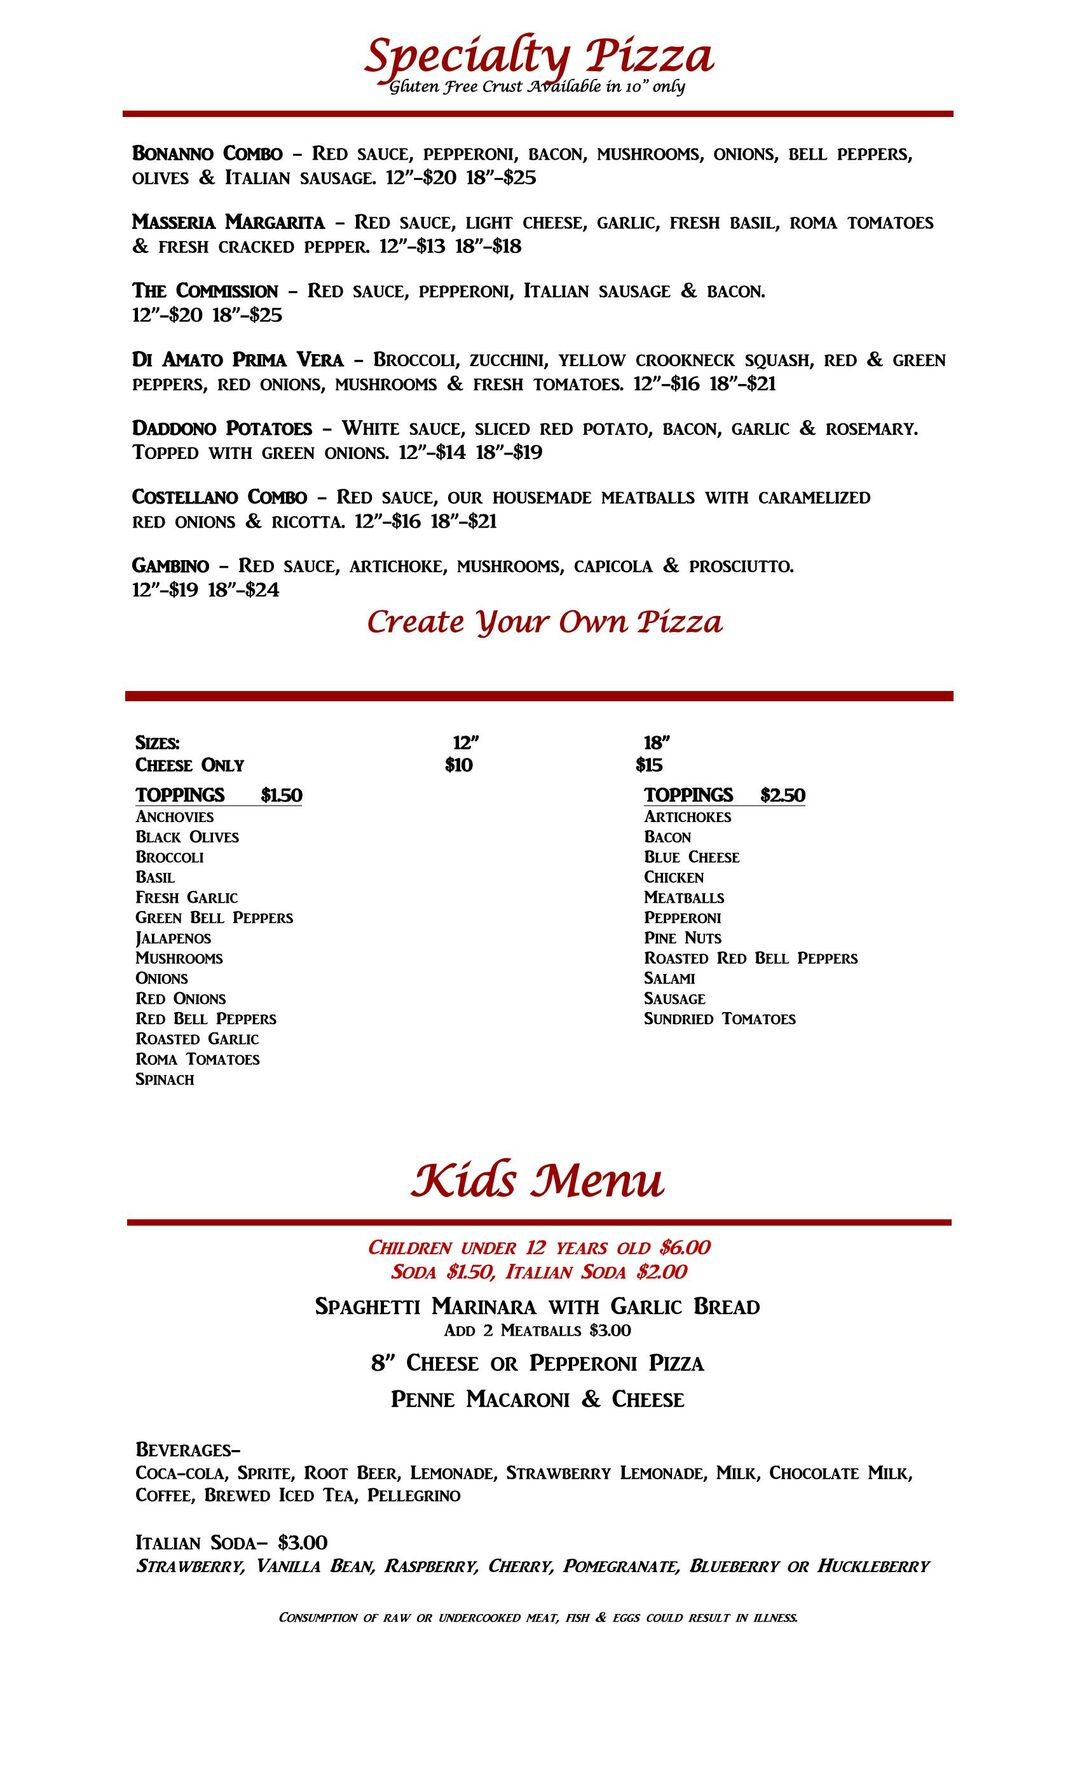 specialty pizzas and kids menu